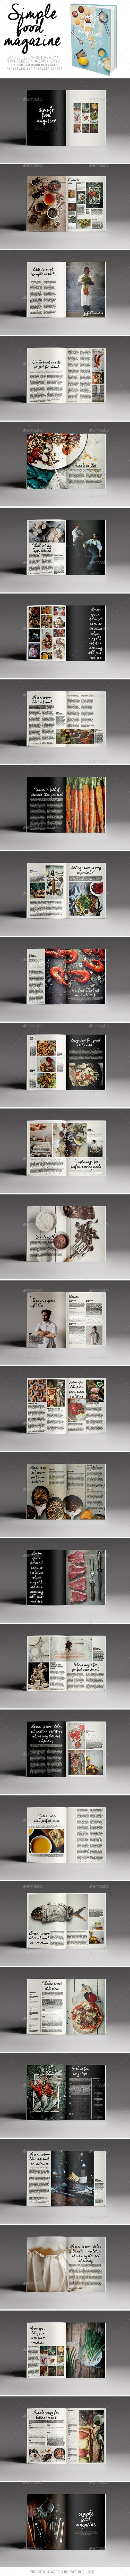 Simple Food Magazine Template | #magazinetemplate #magazinedesign | Download: http://graphicriver.net/item/simple-food-magazine/10251408?ref=ksioks